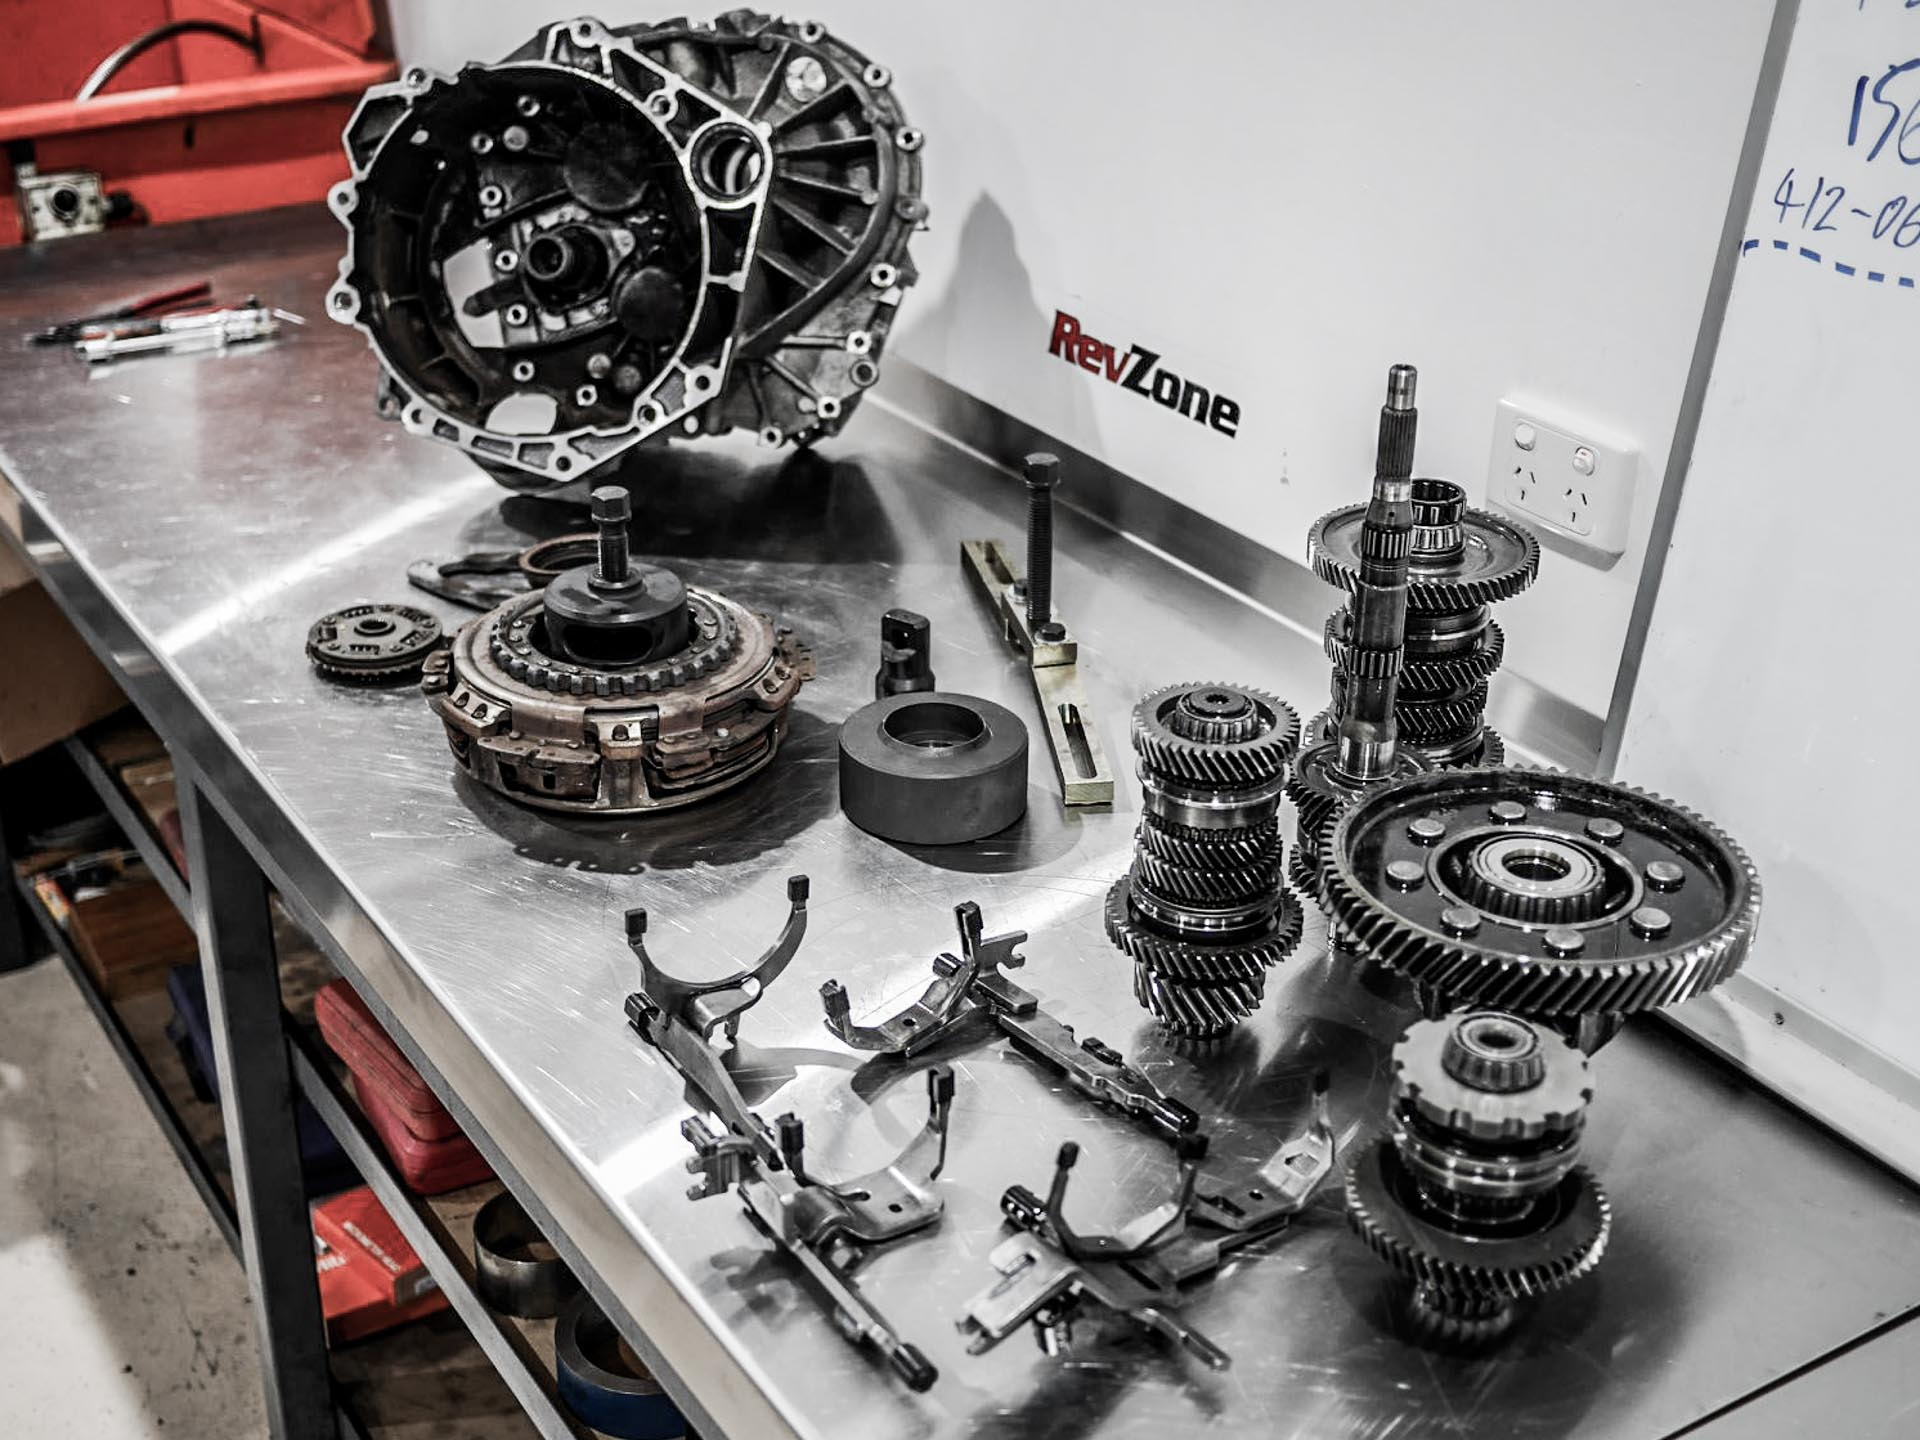 DSG Transmission Repair / Rebuild / Diagnostics 2 DSG Transmission Repair / Rebuild / Diagnostics Is your Audi or VW gearbox shuddering, clunky, noisy or not shifting as it should?